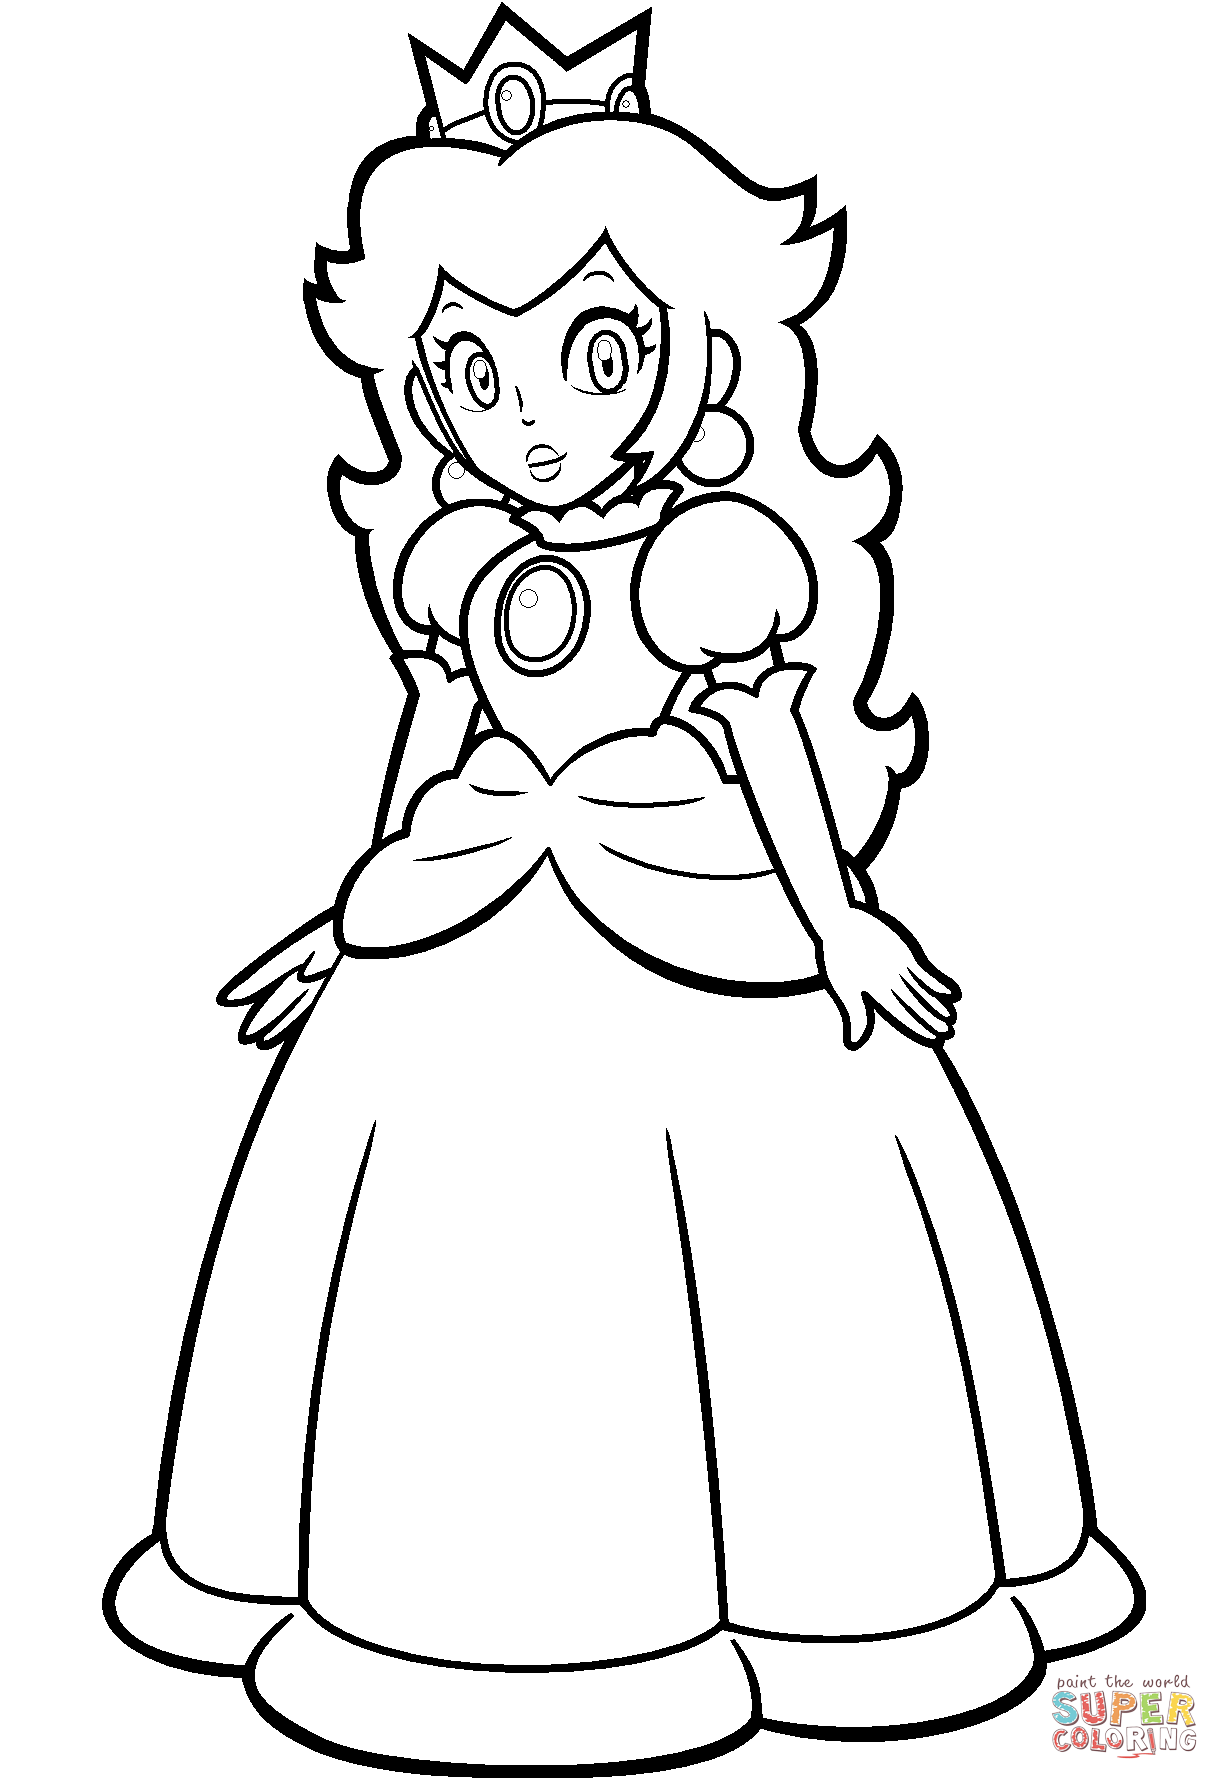 Flame Princess Drawing at GetDrawings.com | Free for personal use ...